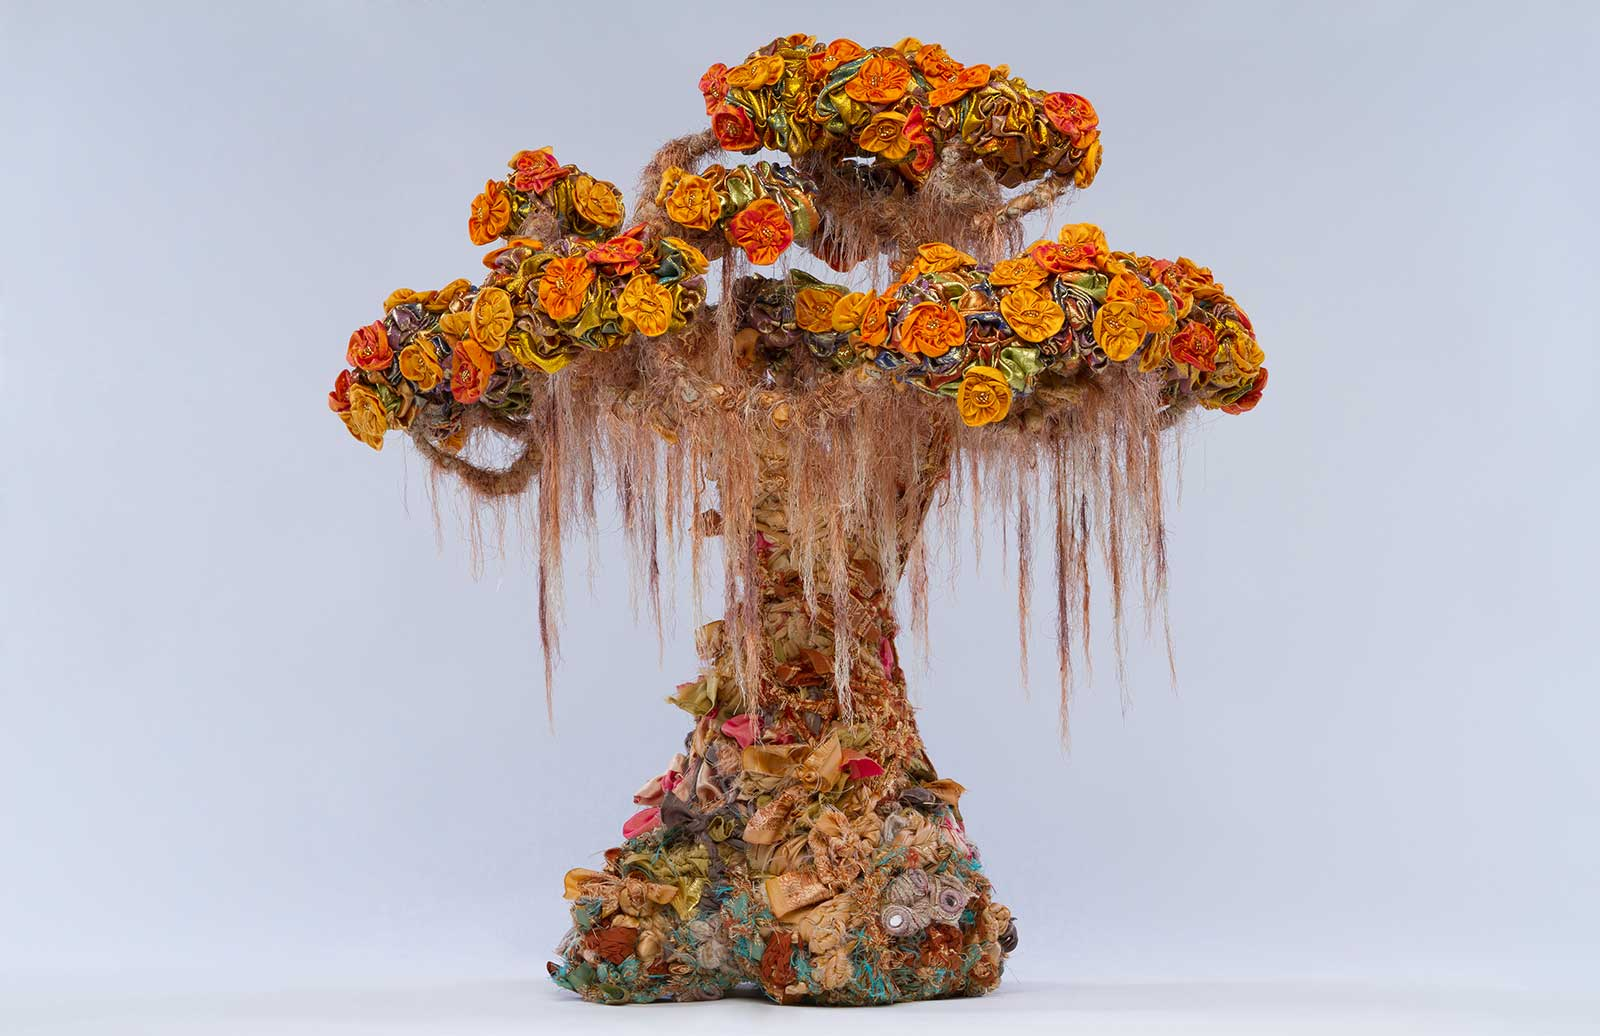 sculpture in form of bonsai tree made from discarded textiles